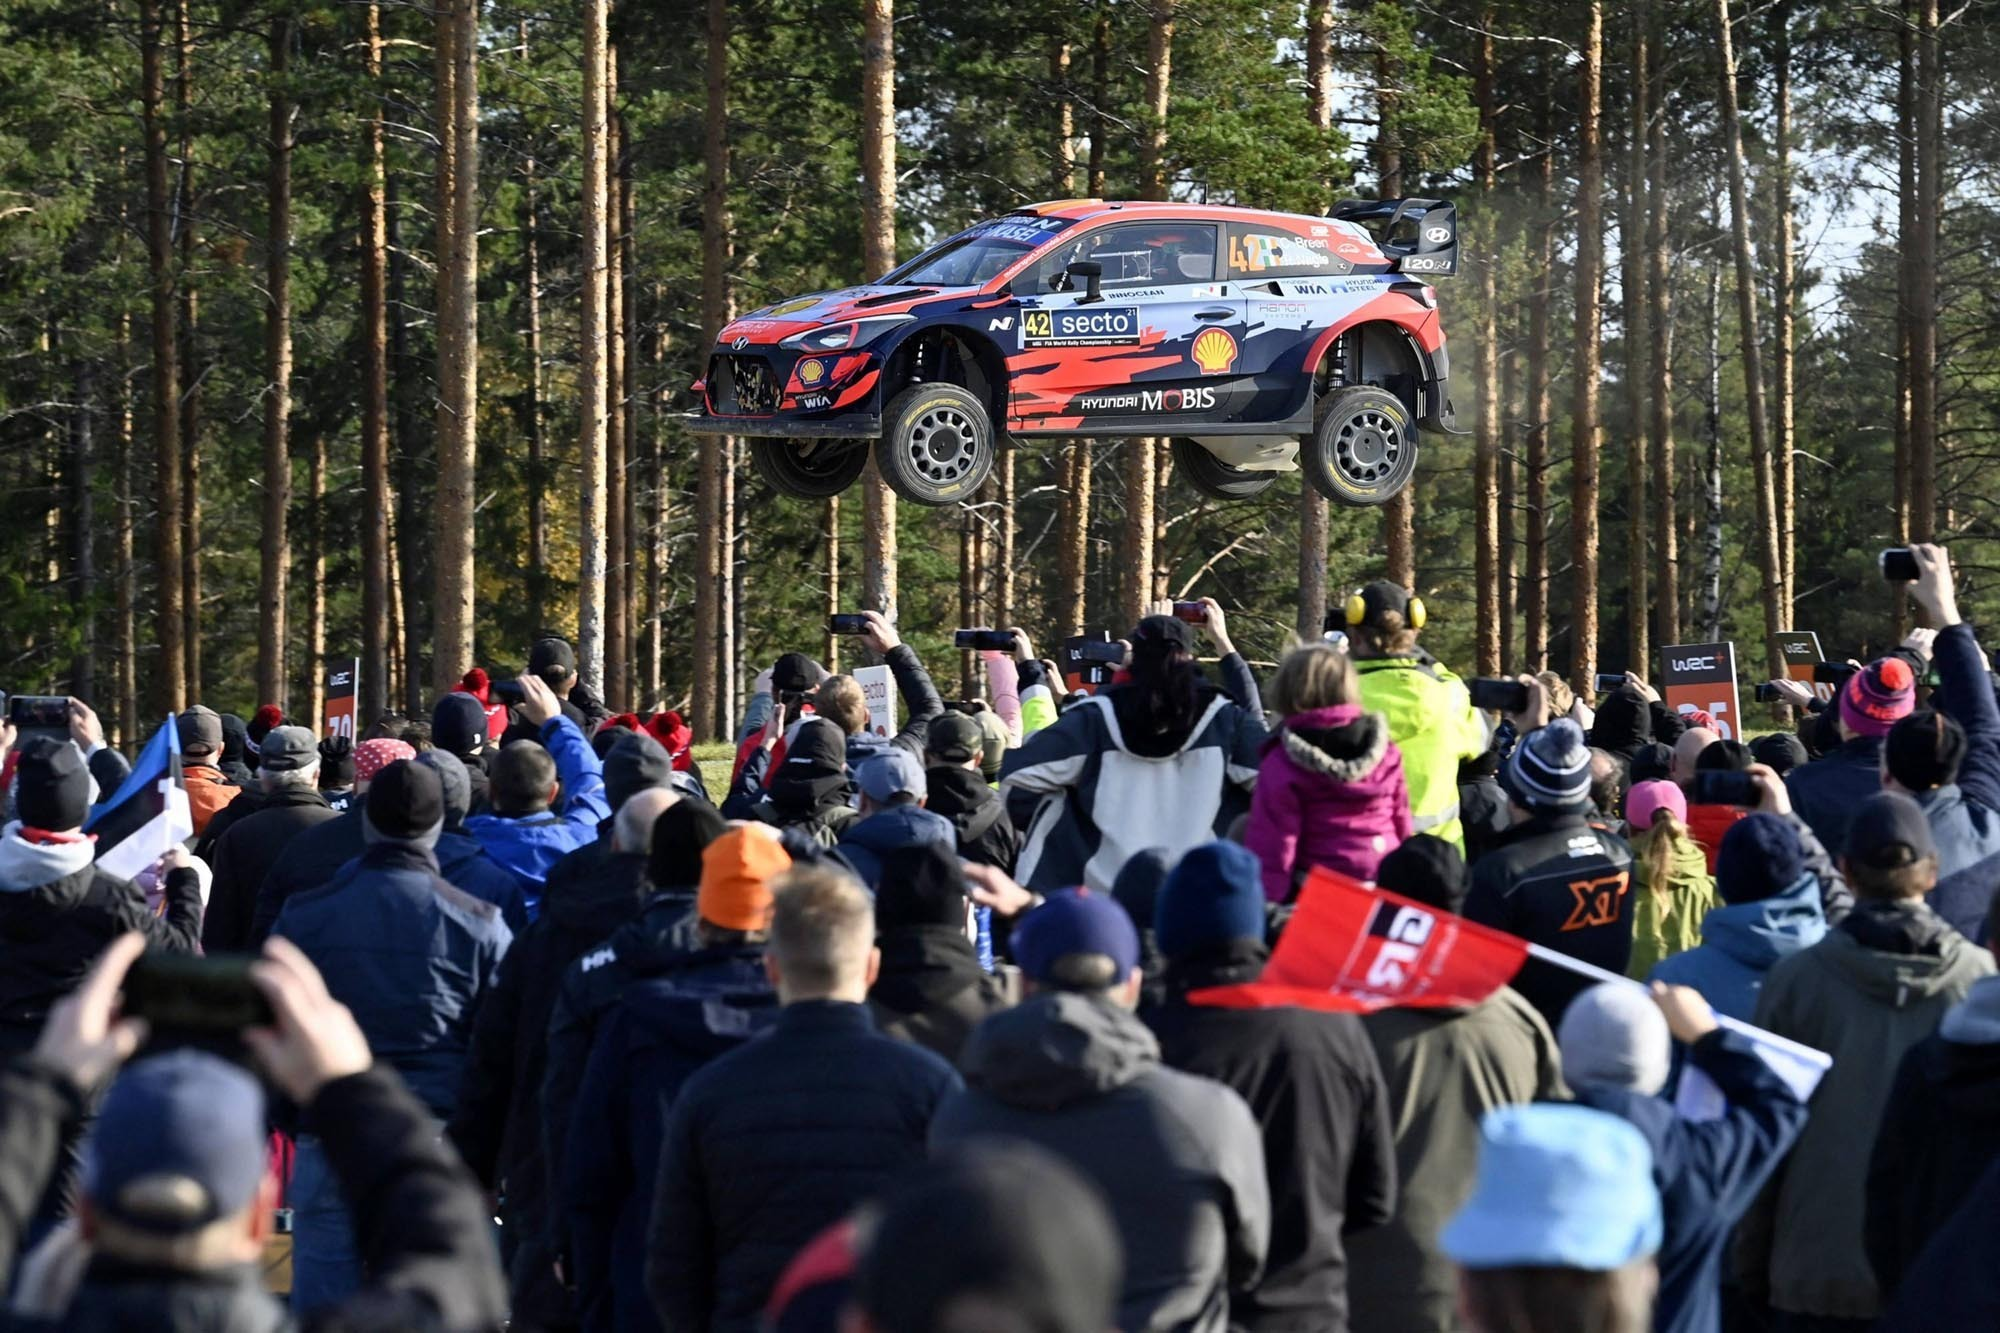 Spectators watch as the Hyundai of Irish driver Craig Breen and his Irish co-driver Paul Nagle soars through the air during the special stage 19, Ruuhimaki, at the WRC Rally Finland in Laukaa, Finland, on October 3, 2021.